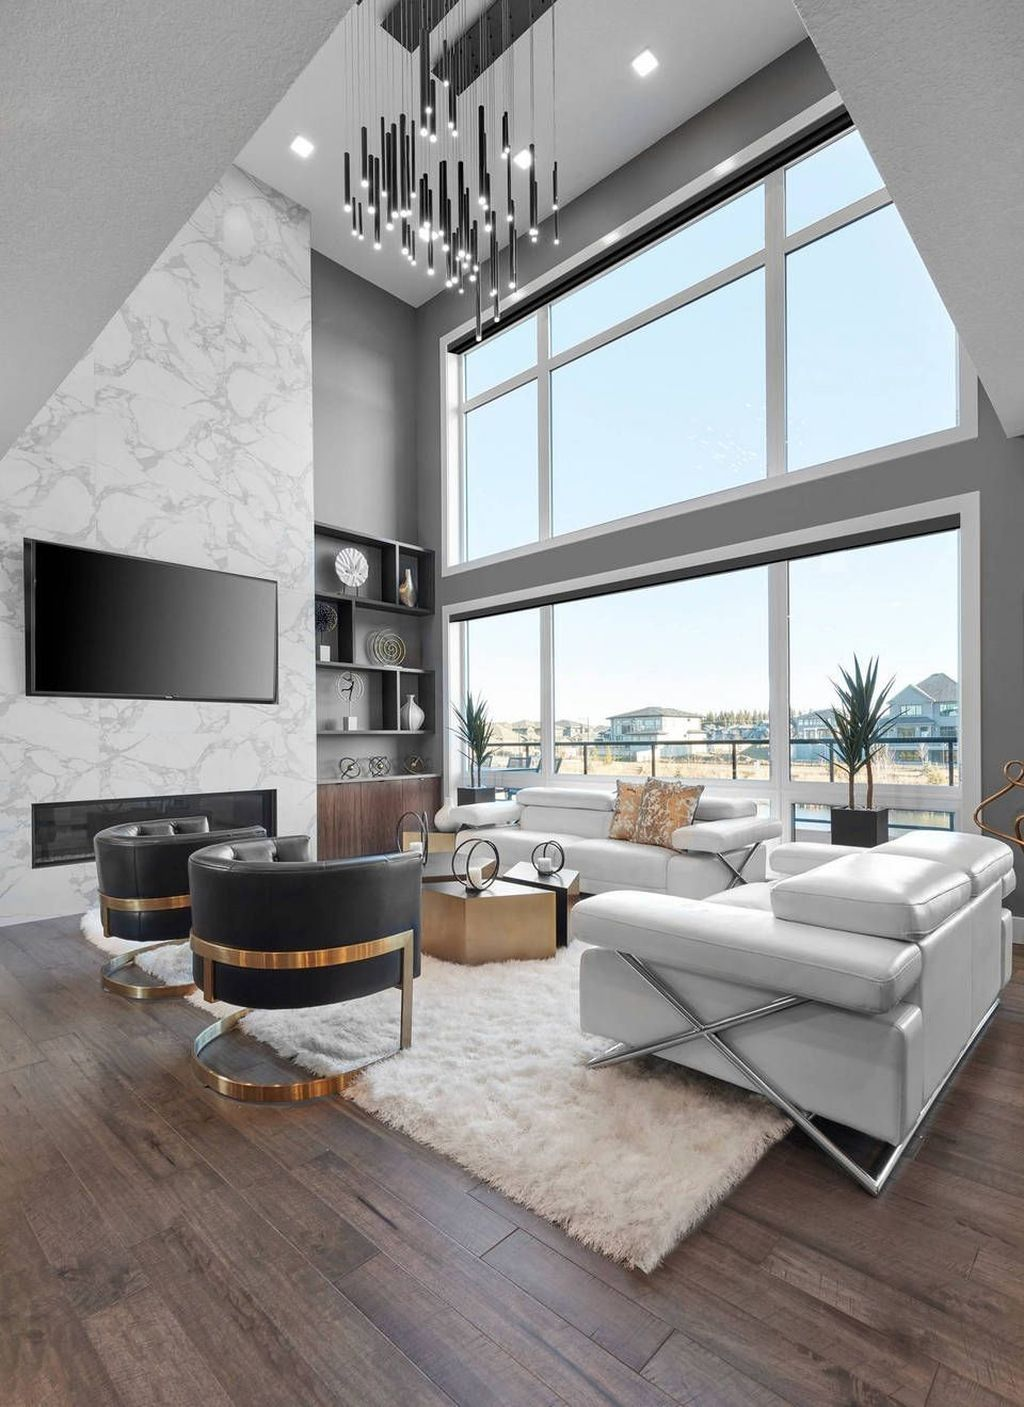 44 Classy Living Room Ideas For Your Home Nowaday Classy Living